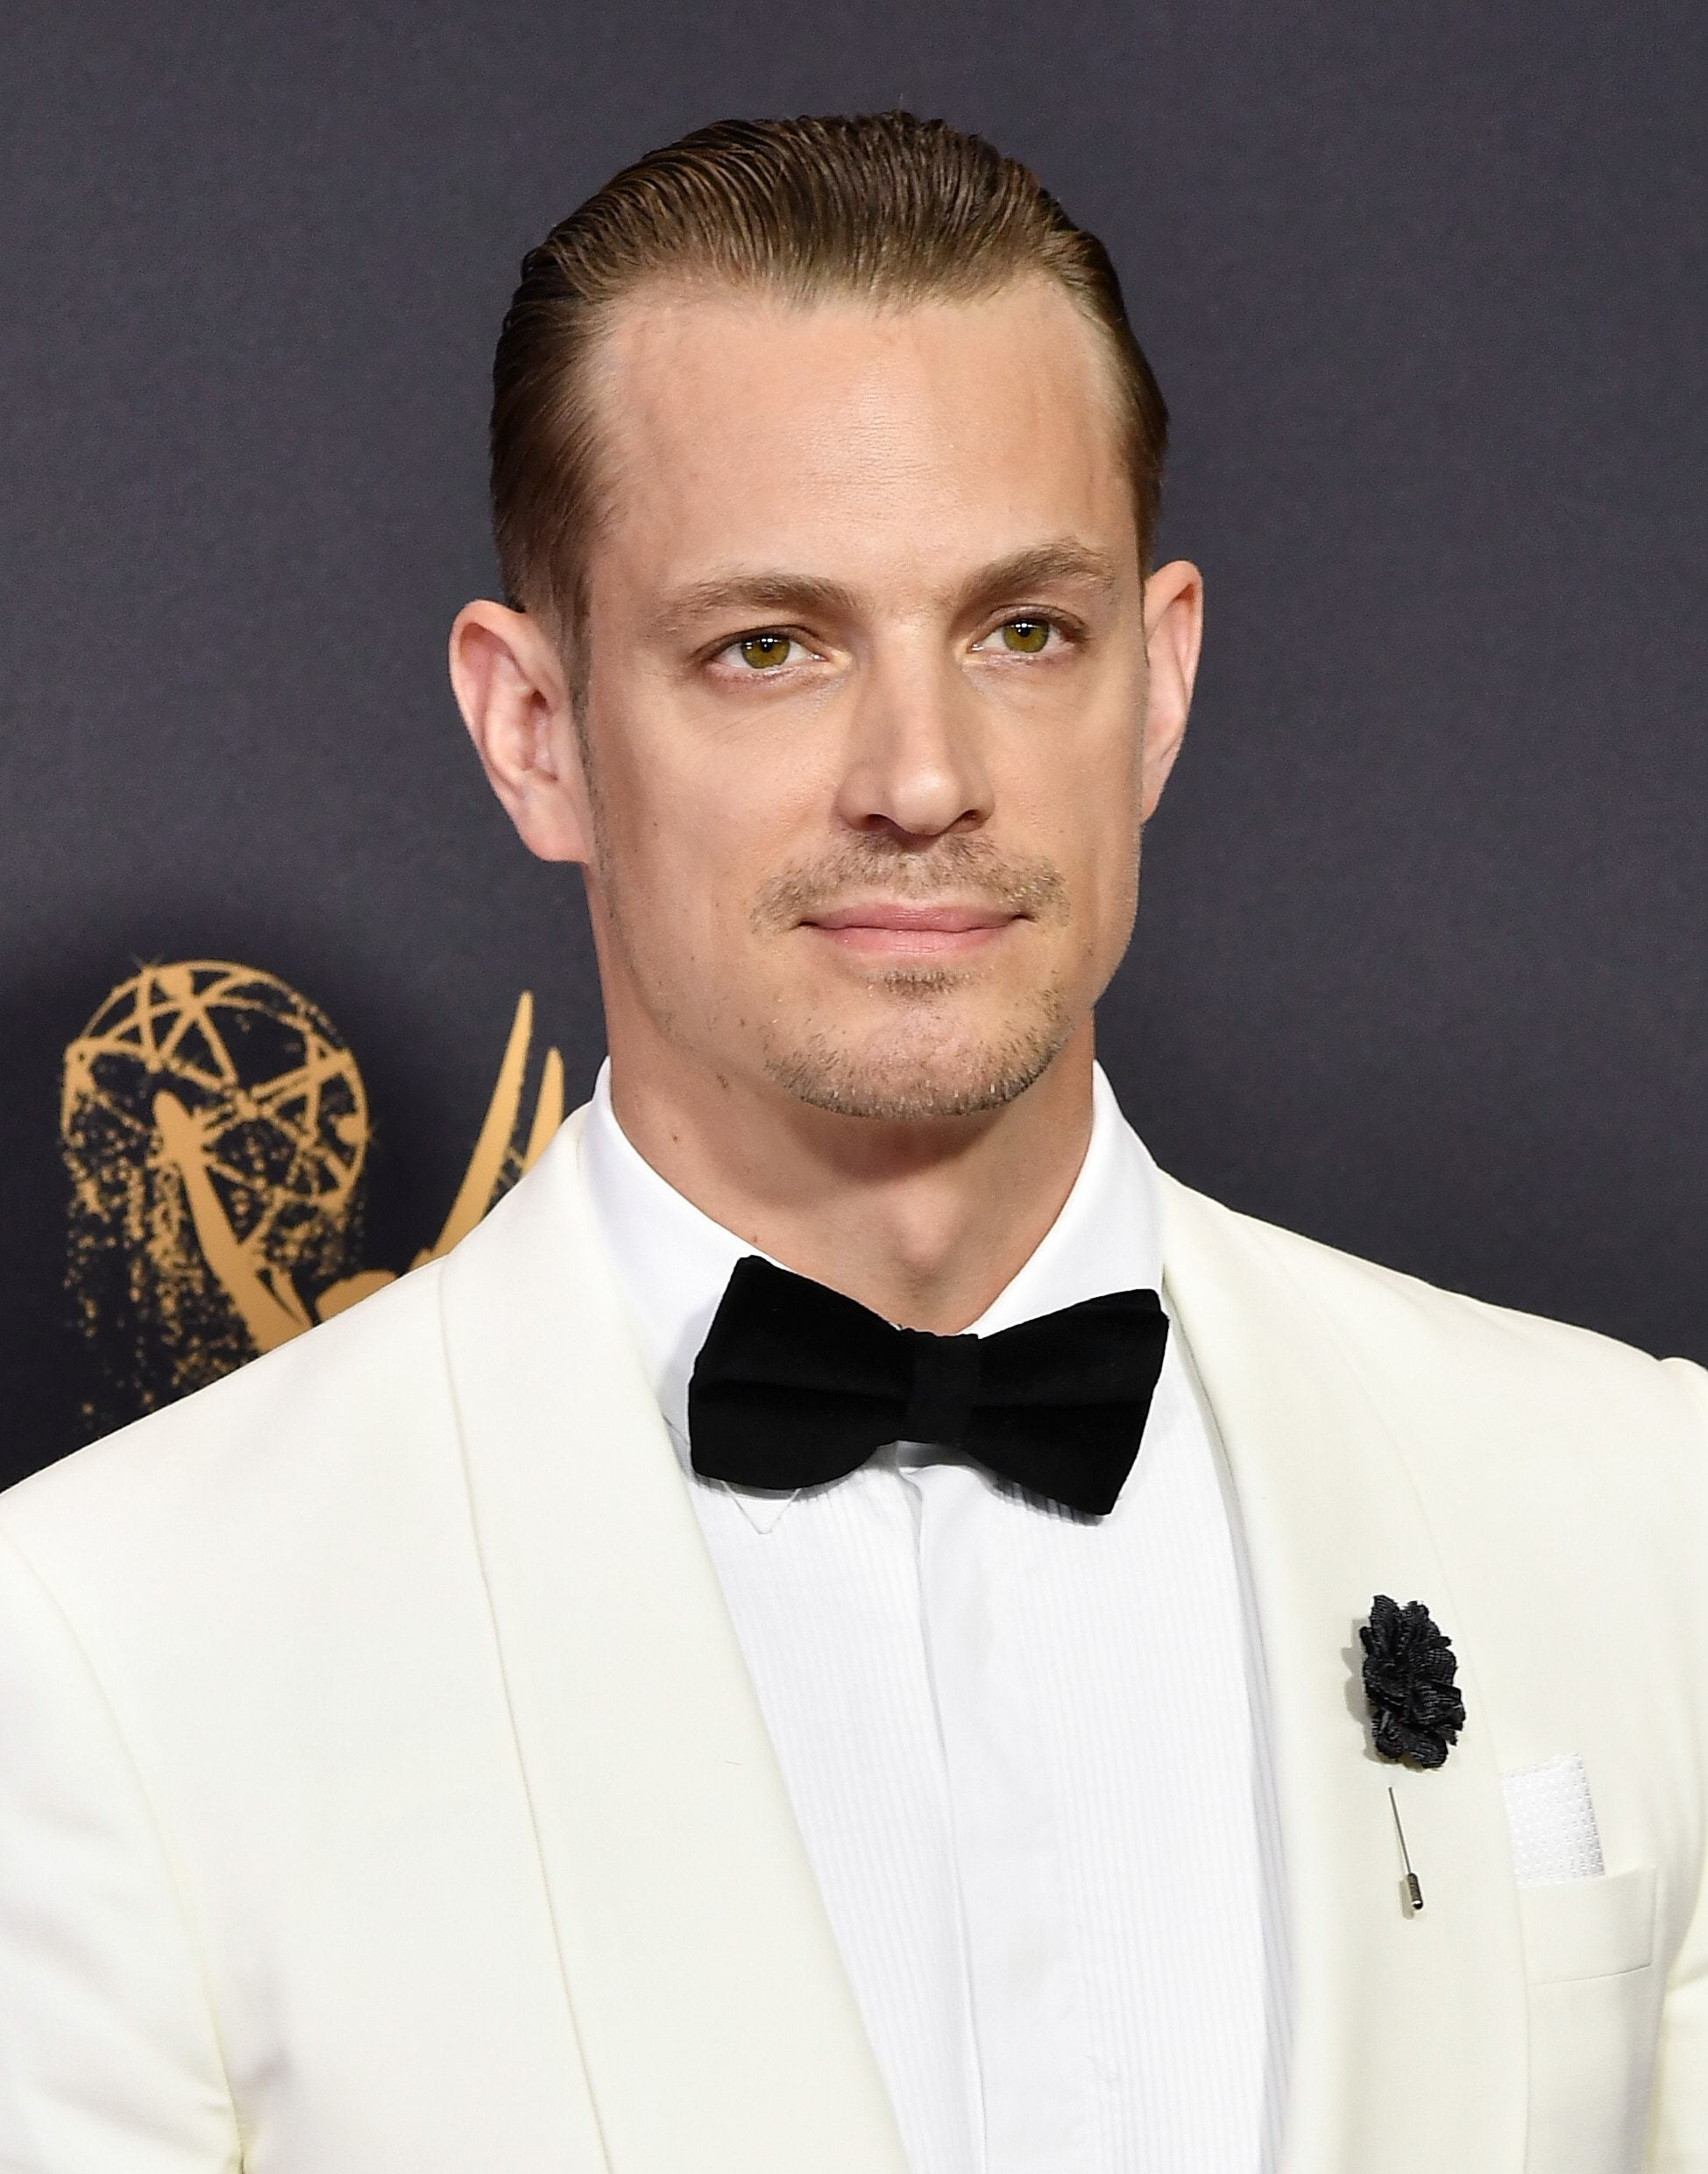 Emmy Awards 2017: Joel Kinnaman with wet look slicked back brown hair